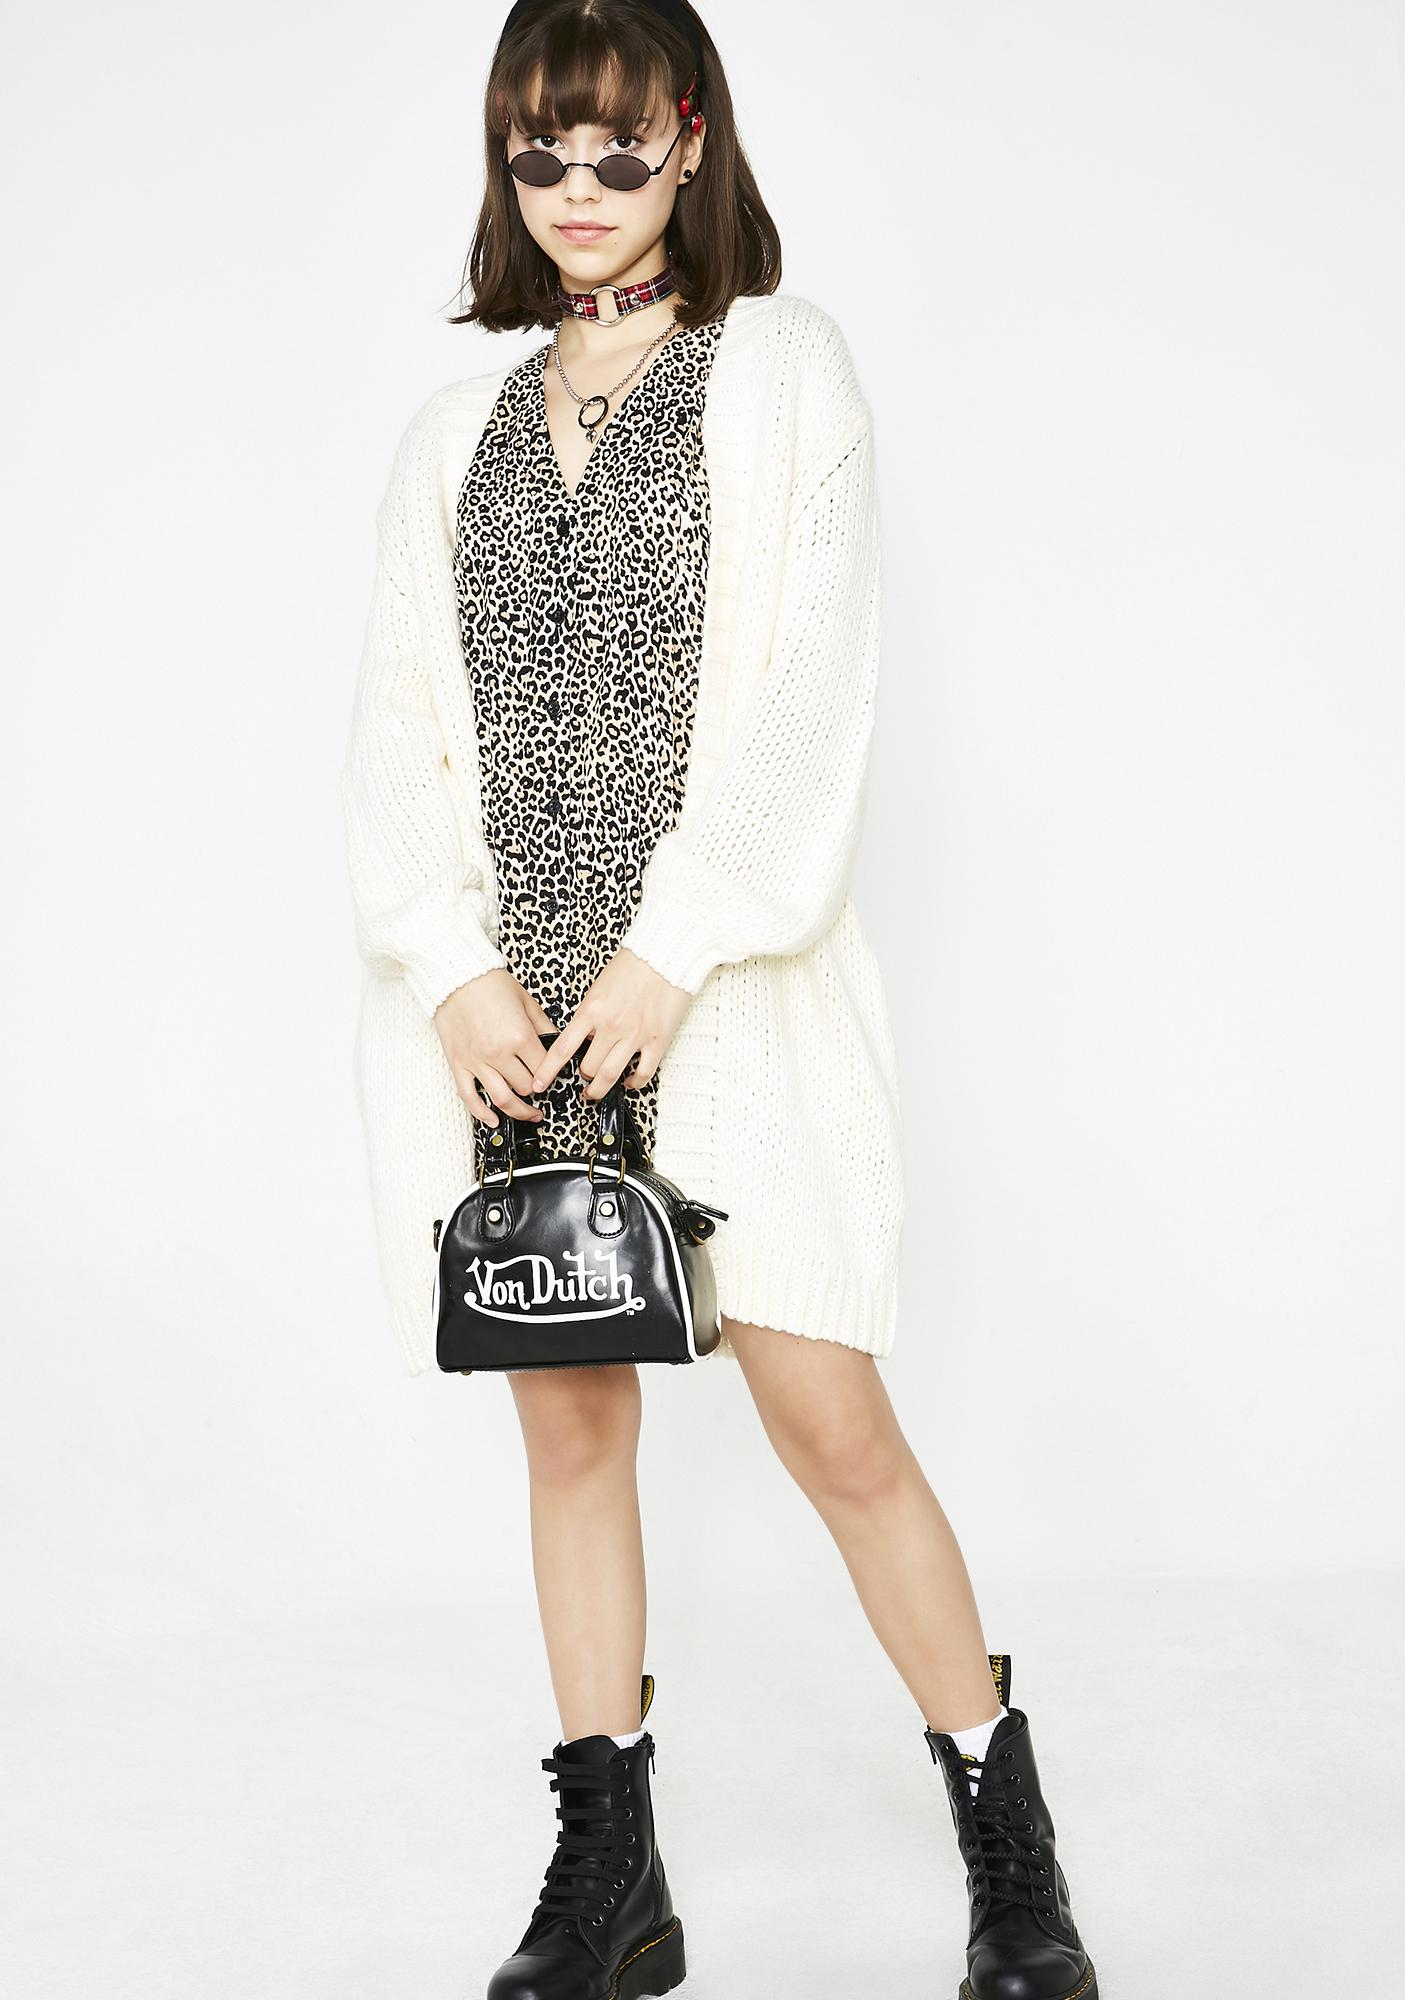 d5acdefb8a65 ... Honey Punch Creme Brulee Knit Cardigan ...